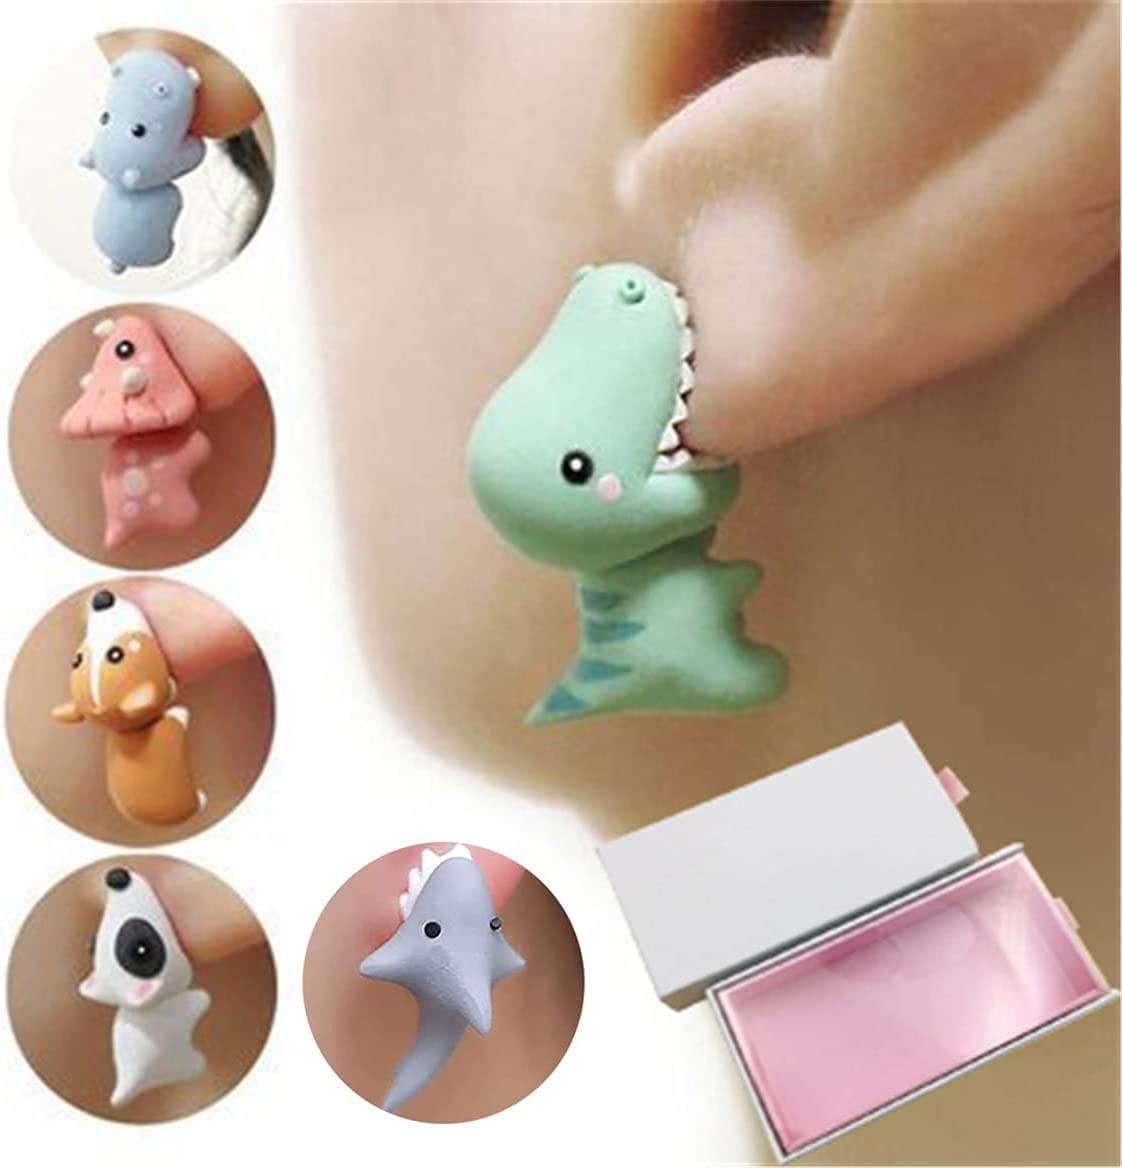 Cute Animal Bite Earring,3D Clay Earrings,Small and Exquisite for Easy Carrying and Collection.Fashion Simple Handmade Polymer Animal Stud Earrings. (One Set + Gift Box)